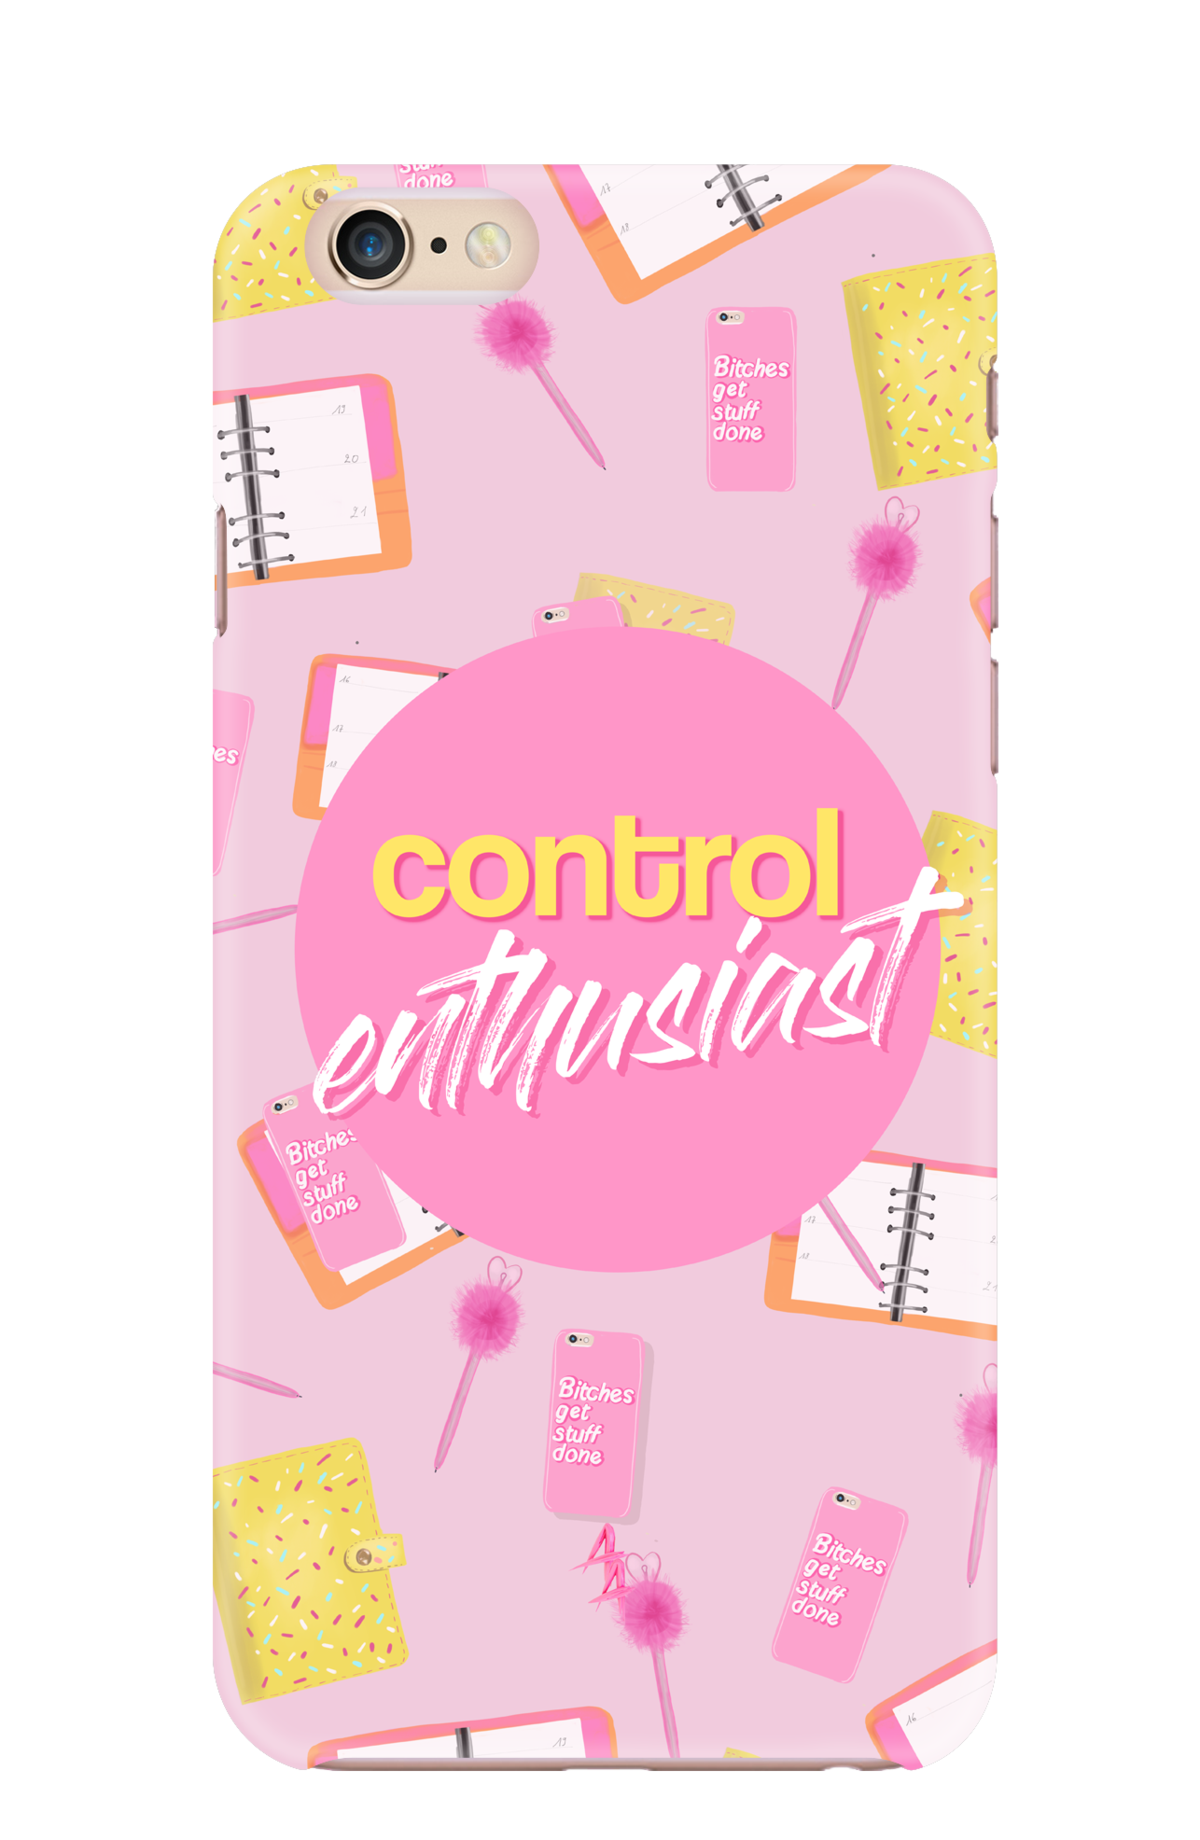 CONTROL ENTHUSIAST |  £25.00 GBP